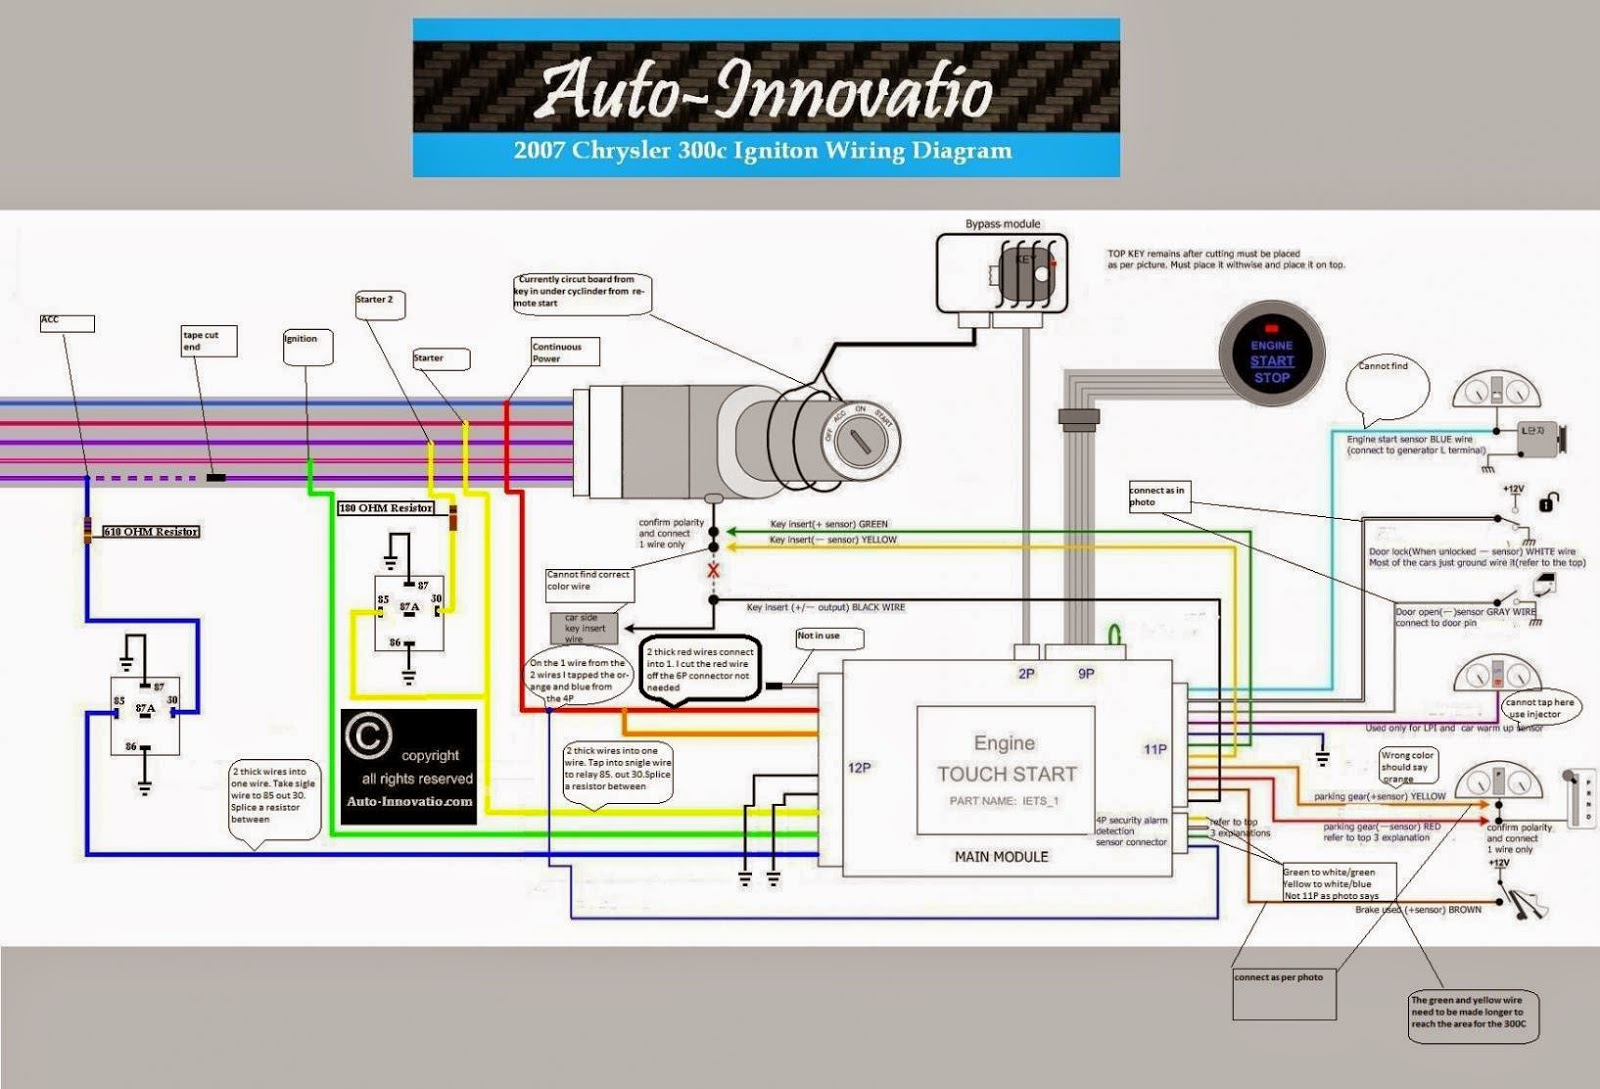 Outstanding Saab 9 5 Towbar Wiring Diagram Gallery - Best Image Wire ...